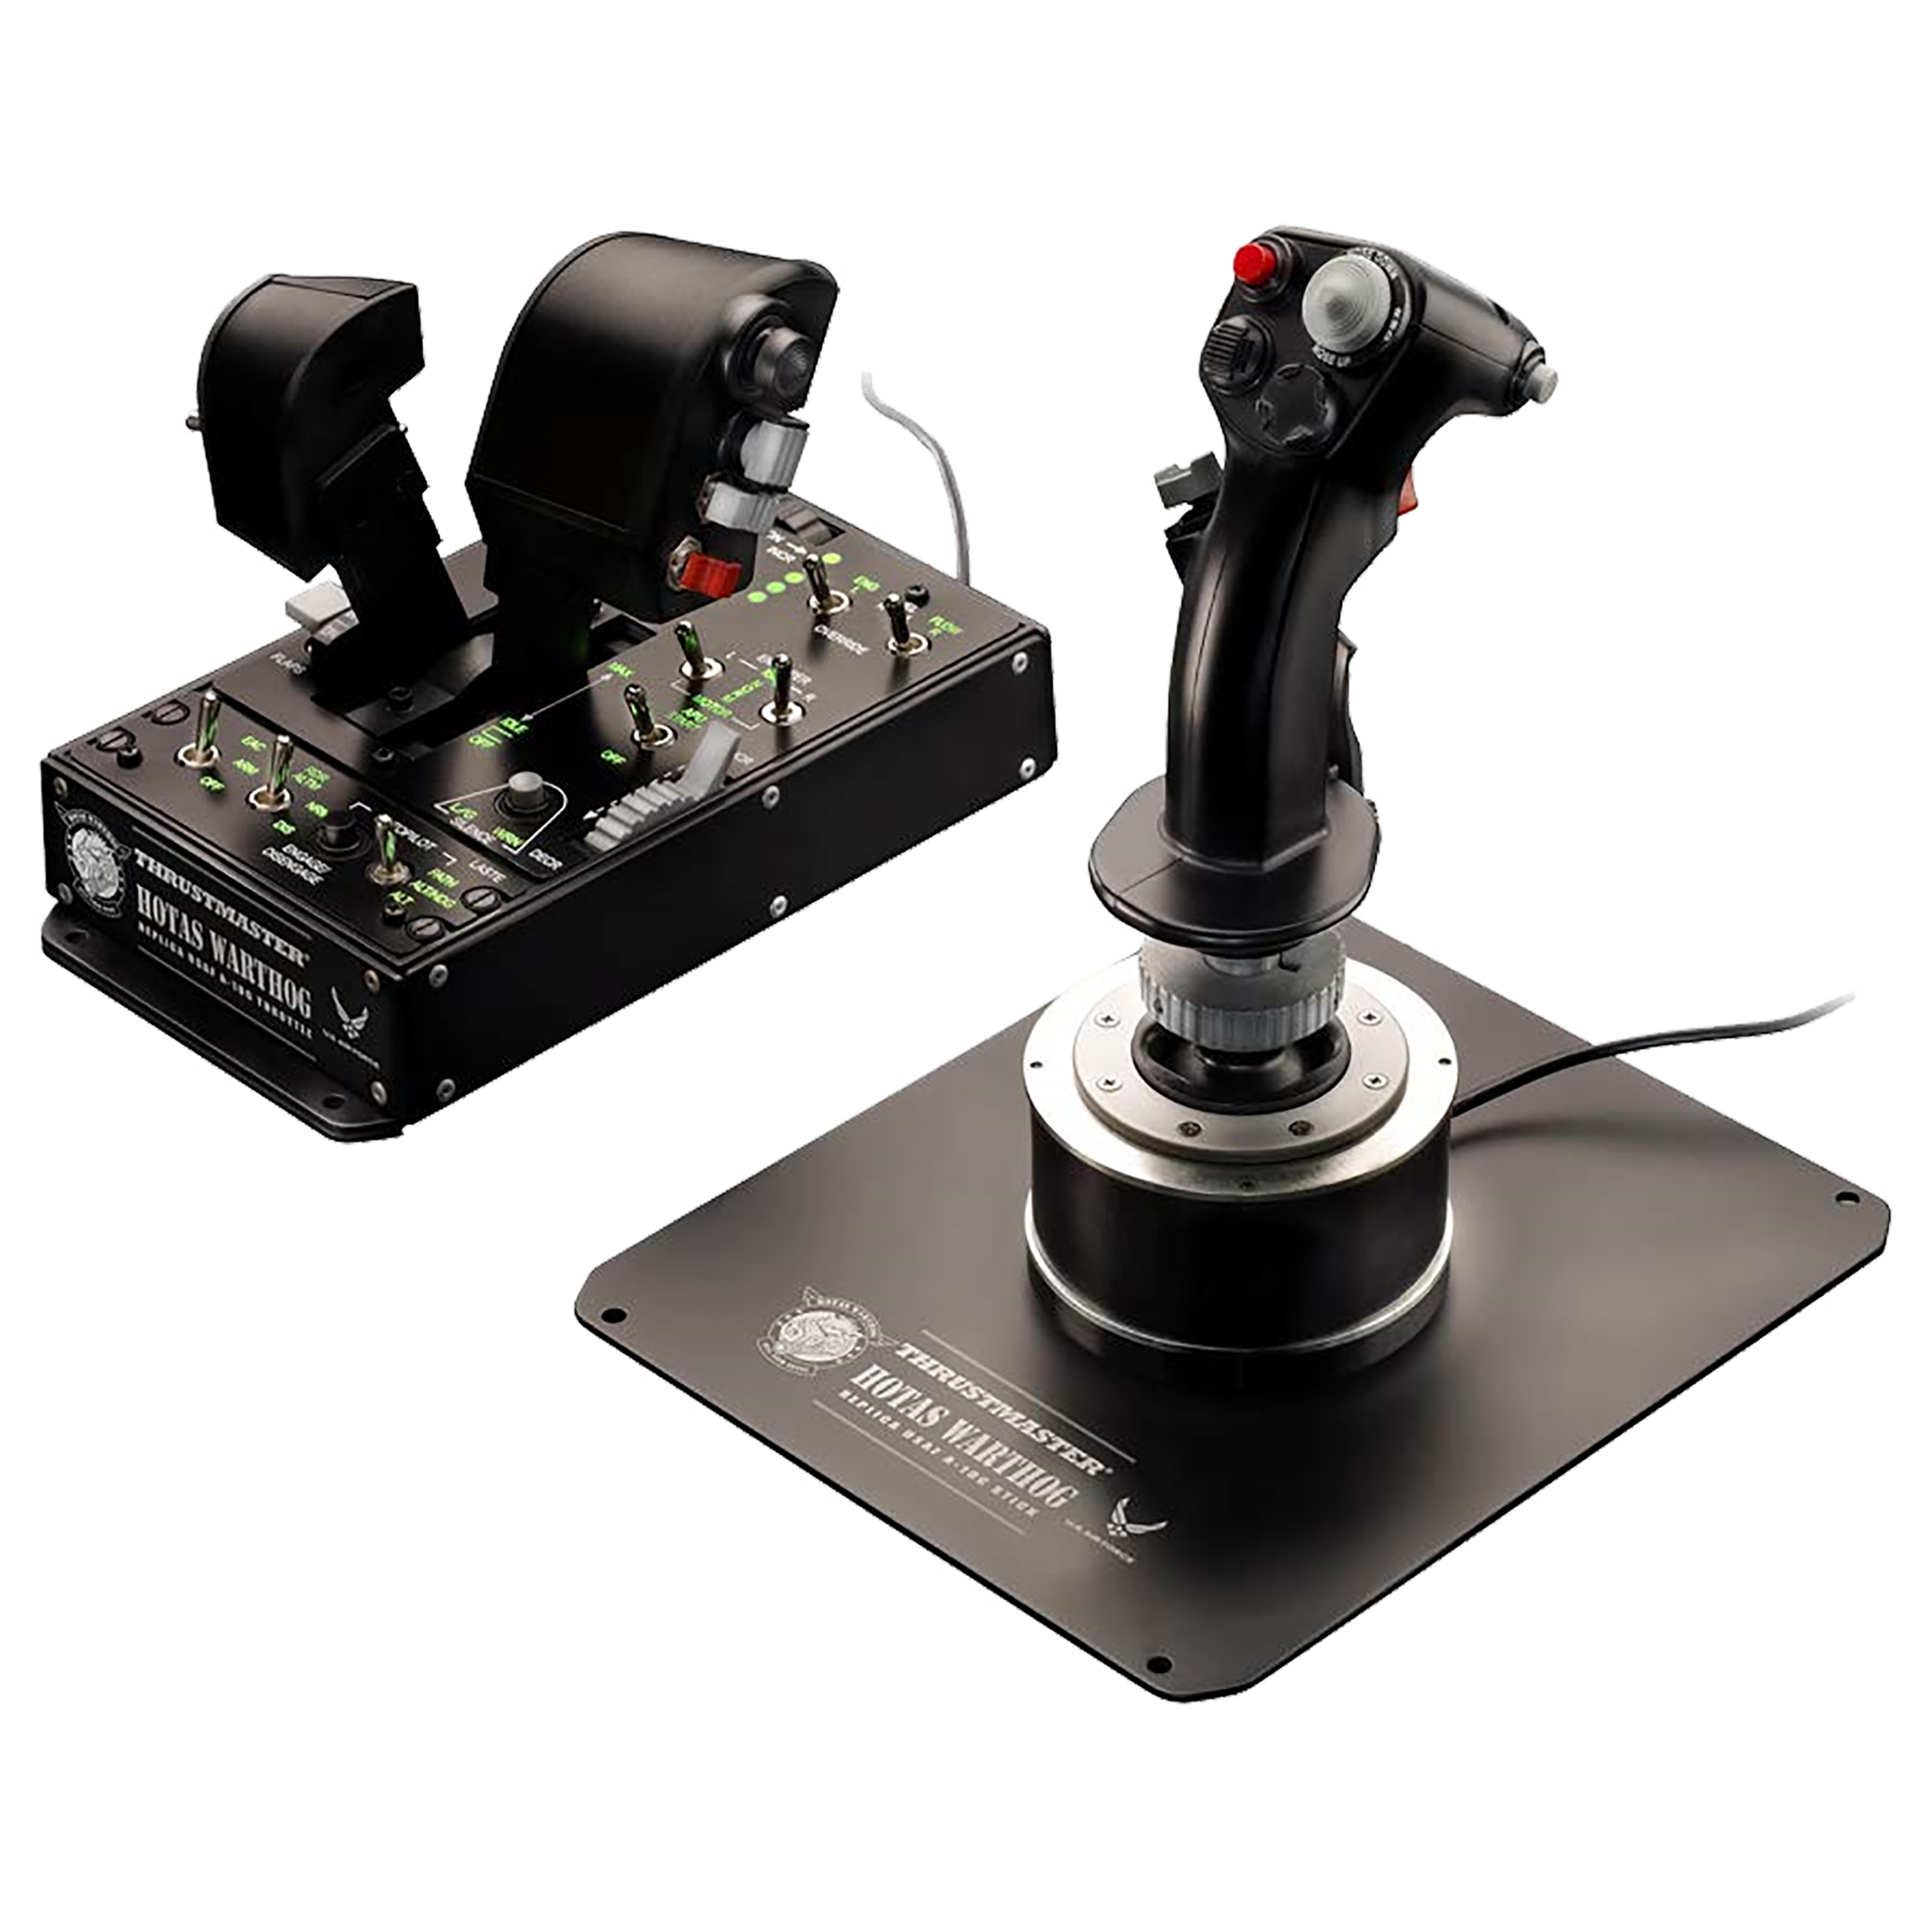 Thrustmaster Hotas Warthog PC Joystick For PC (19 Action Buttons, Black)_1